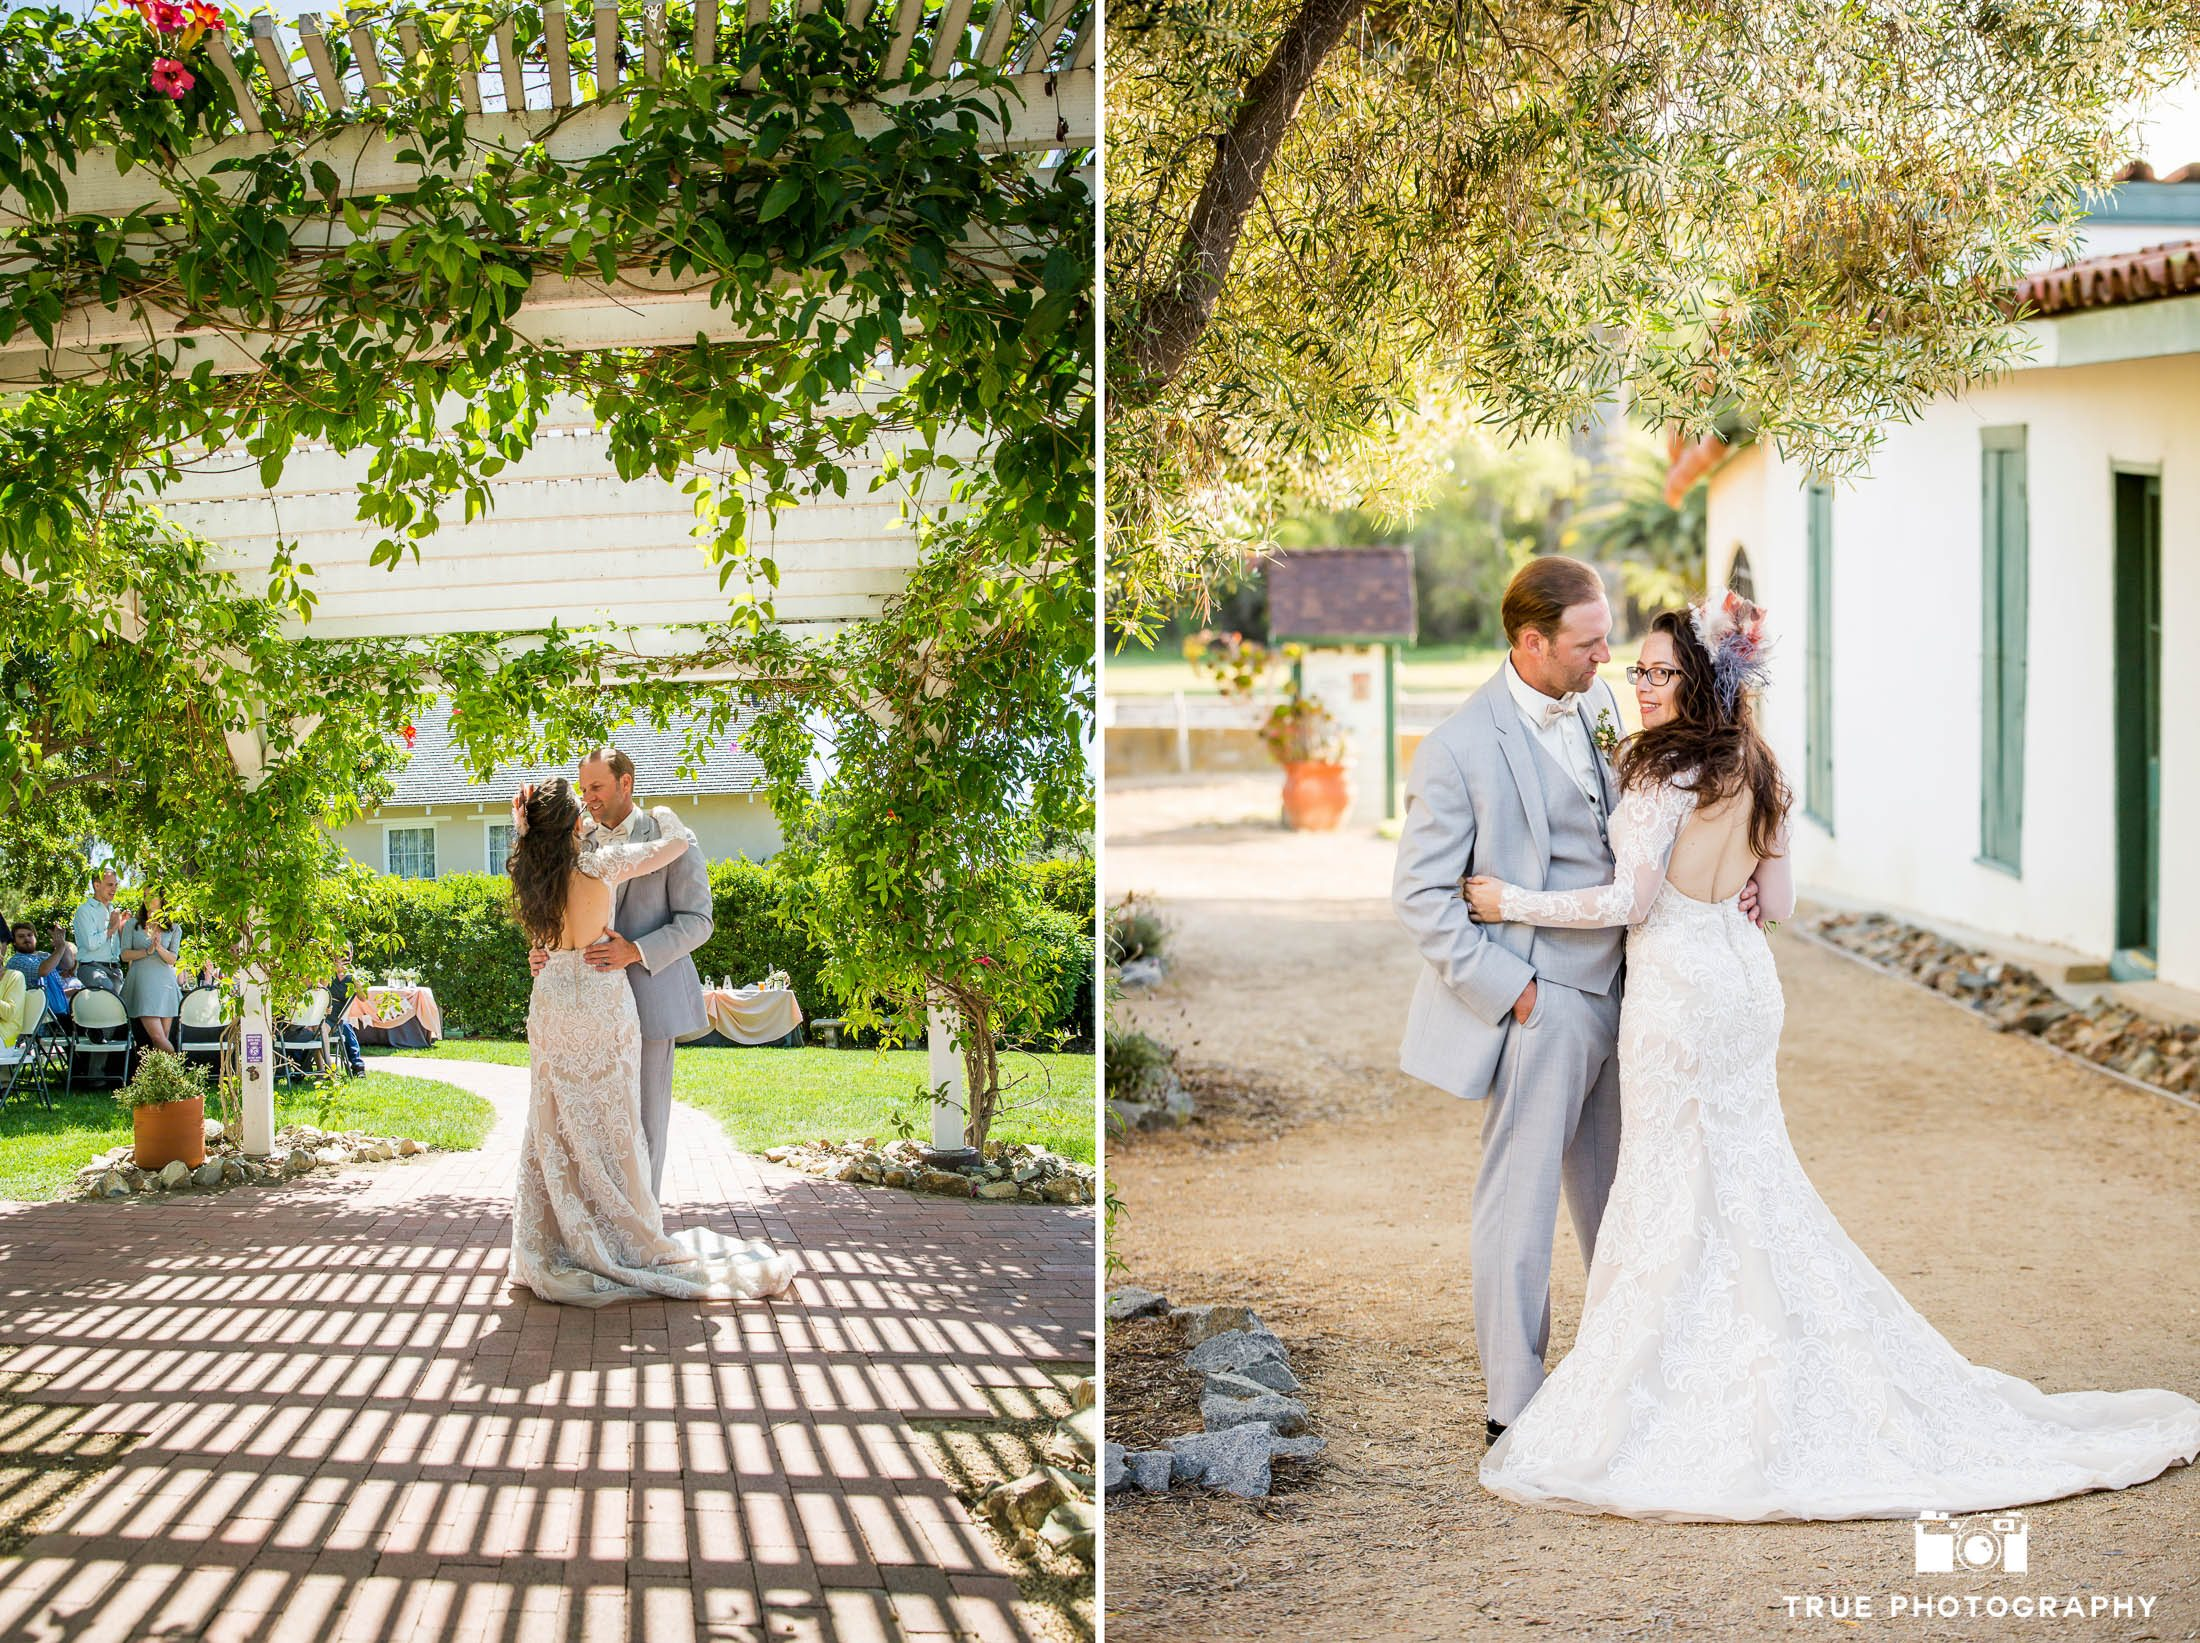 Bride and Groom's First Dance in Victorian Garden at Spanish-style venue during outdoor rustic wedding reception